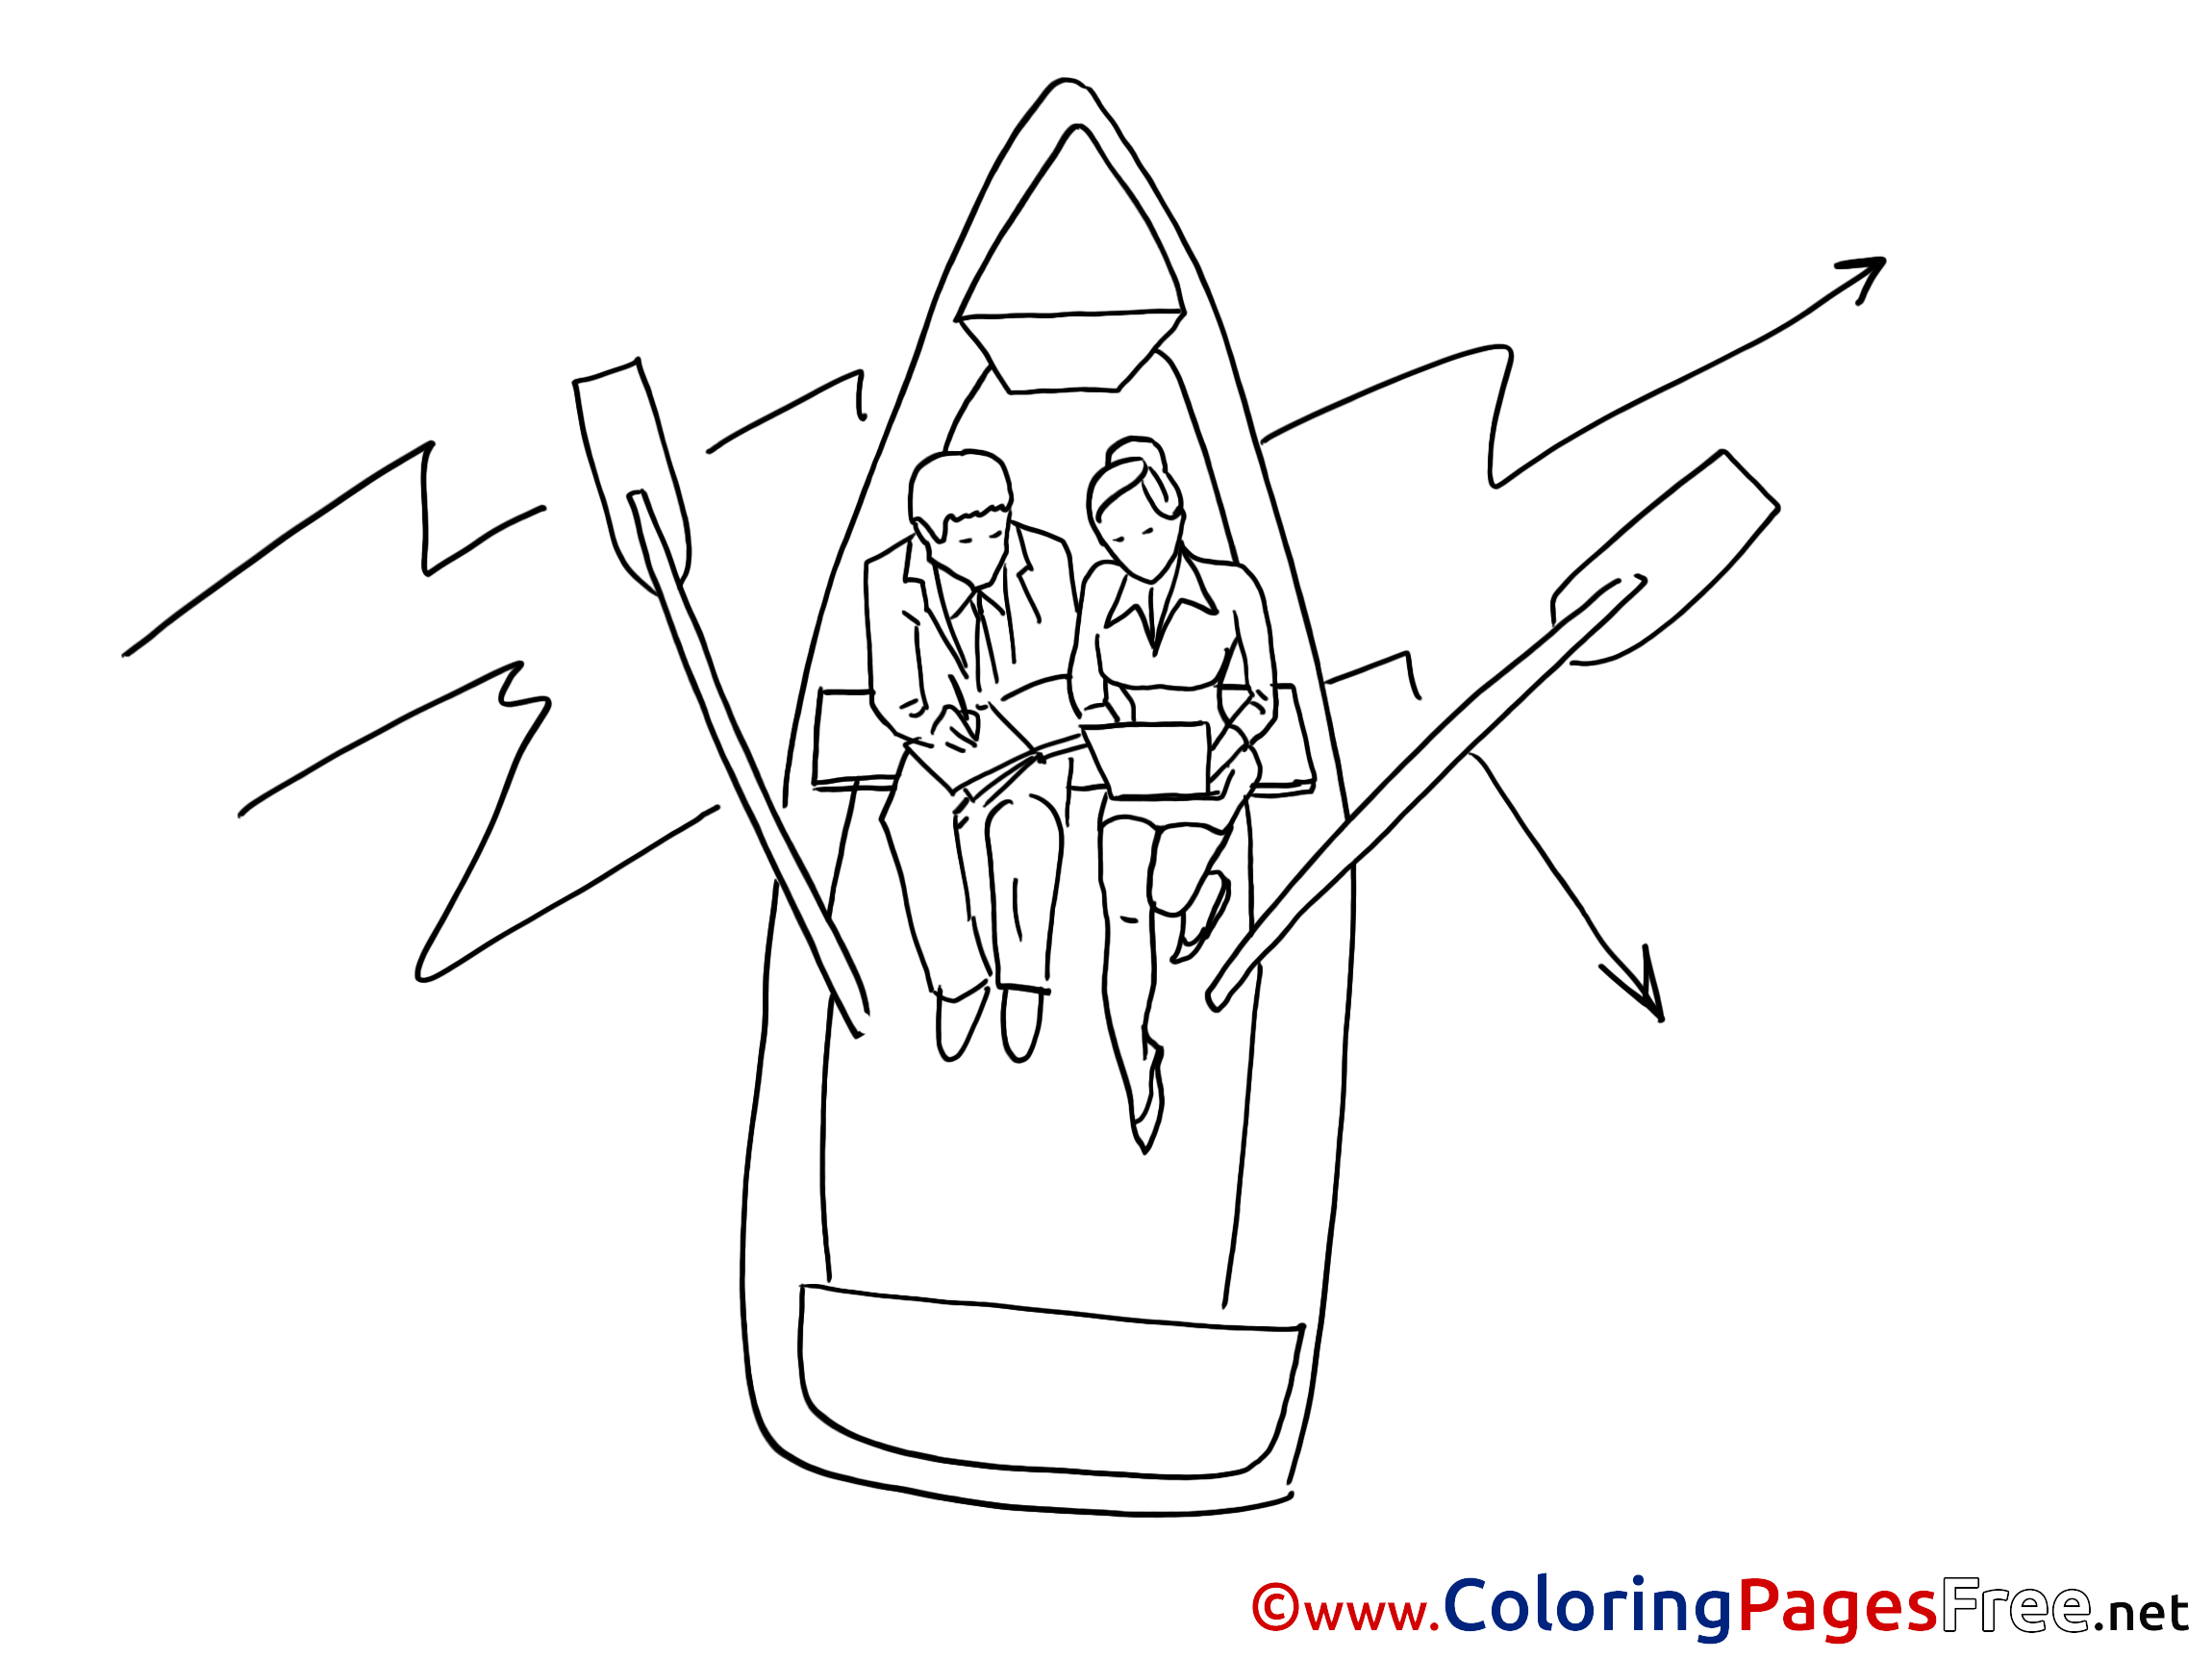 Free Printable Boat Coloring Pages For Kids Boats Ships Clipart ... | 1725x2300